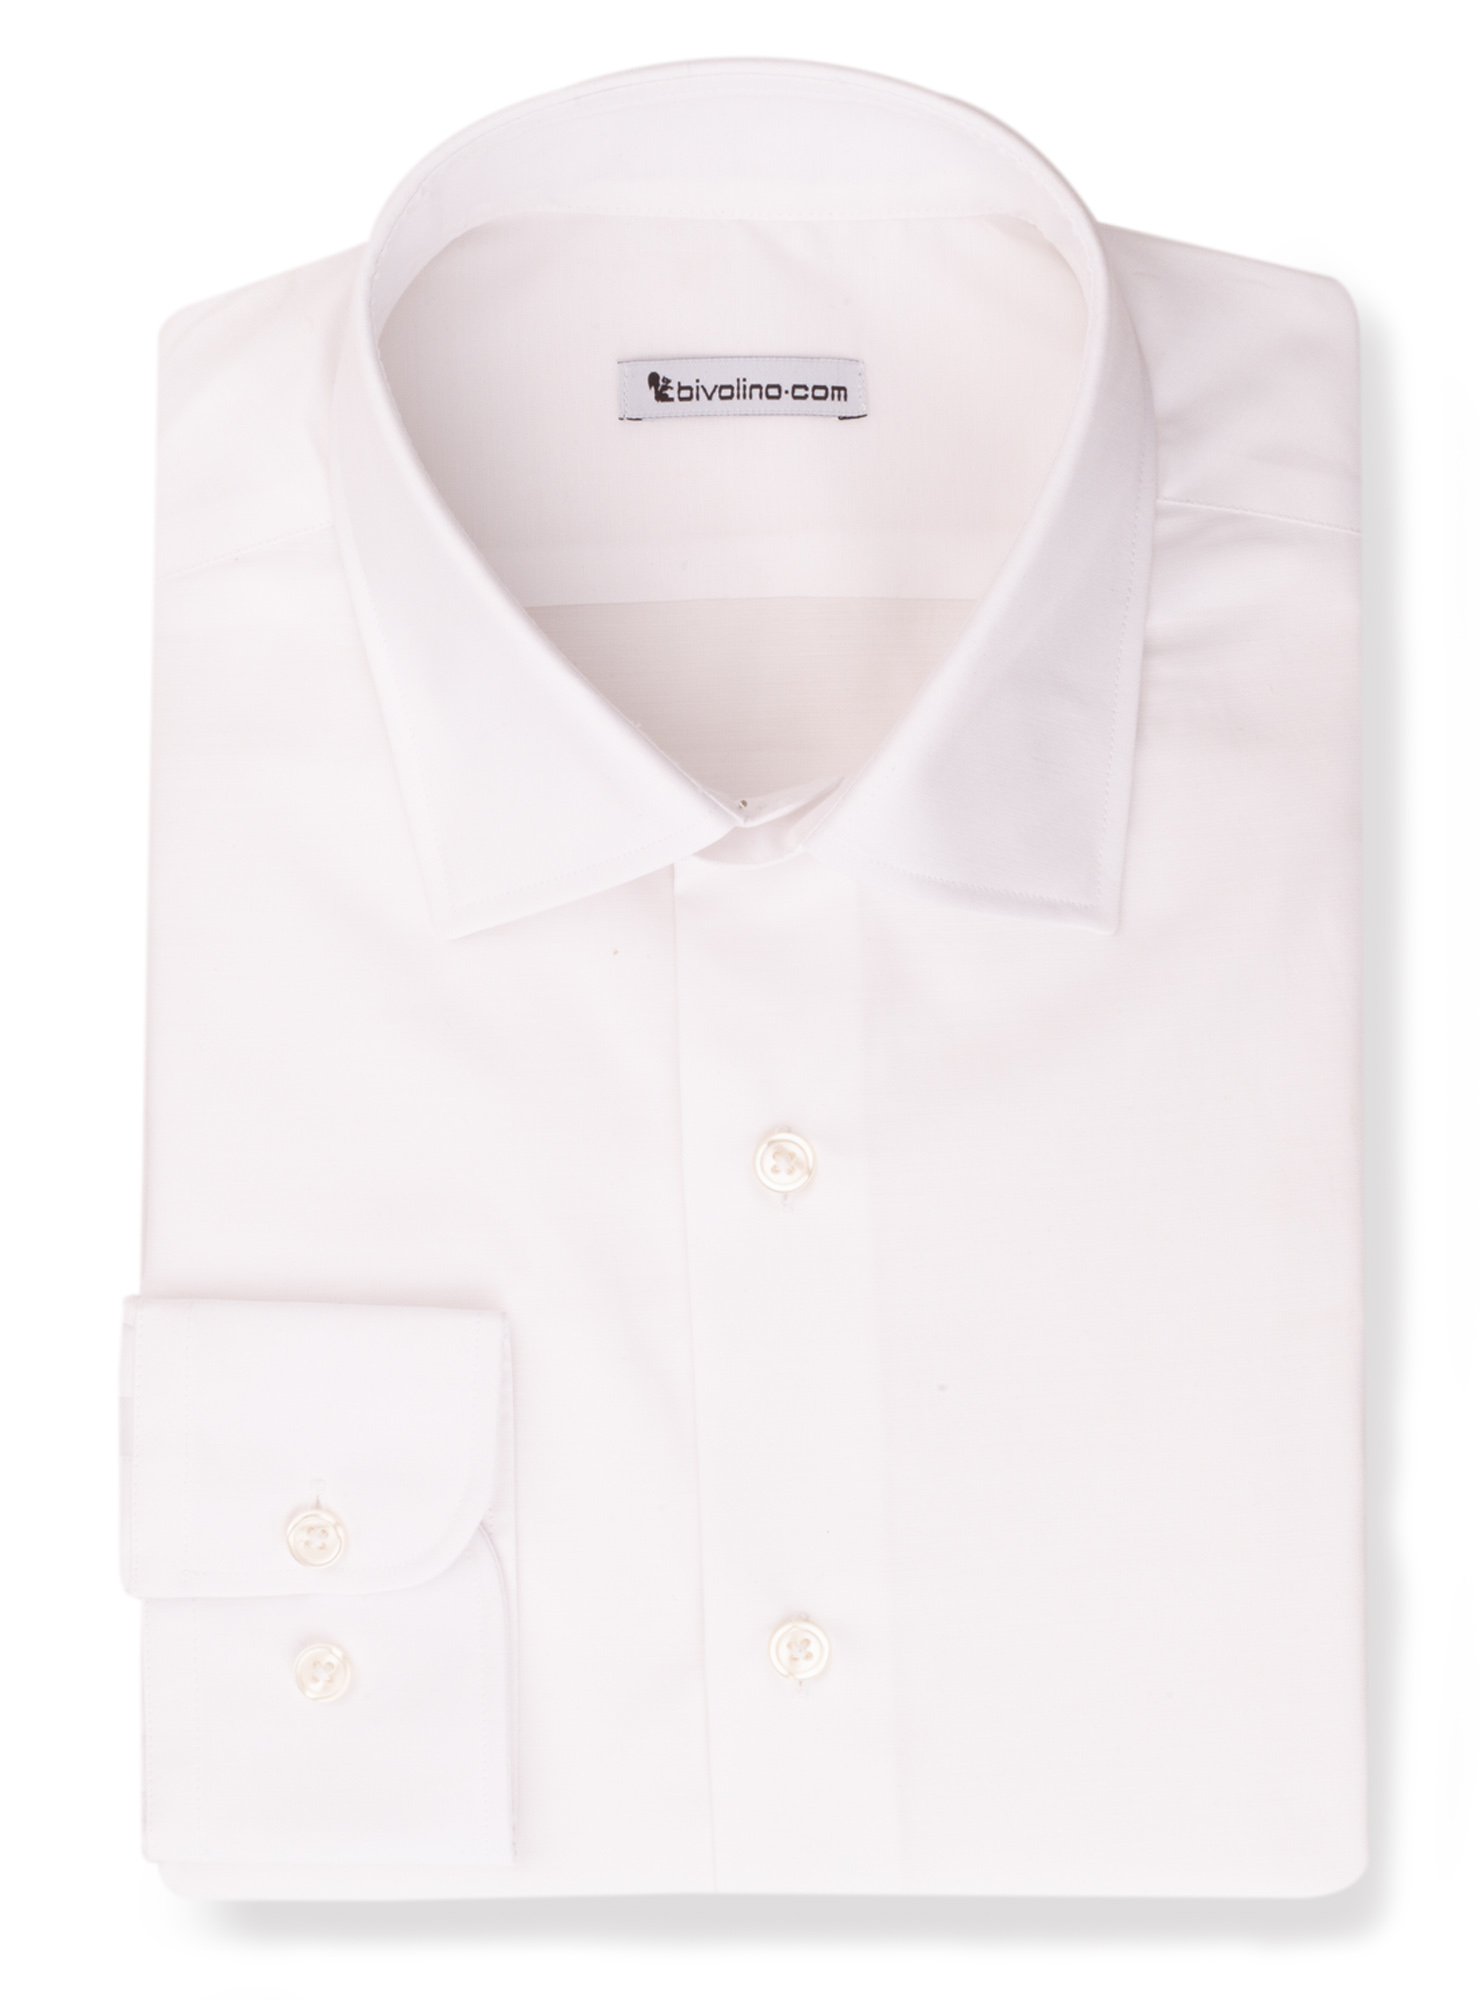 LERIACOTI -  White poplin easy-care shirt - Areca 1